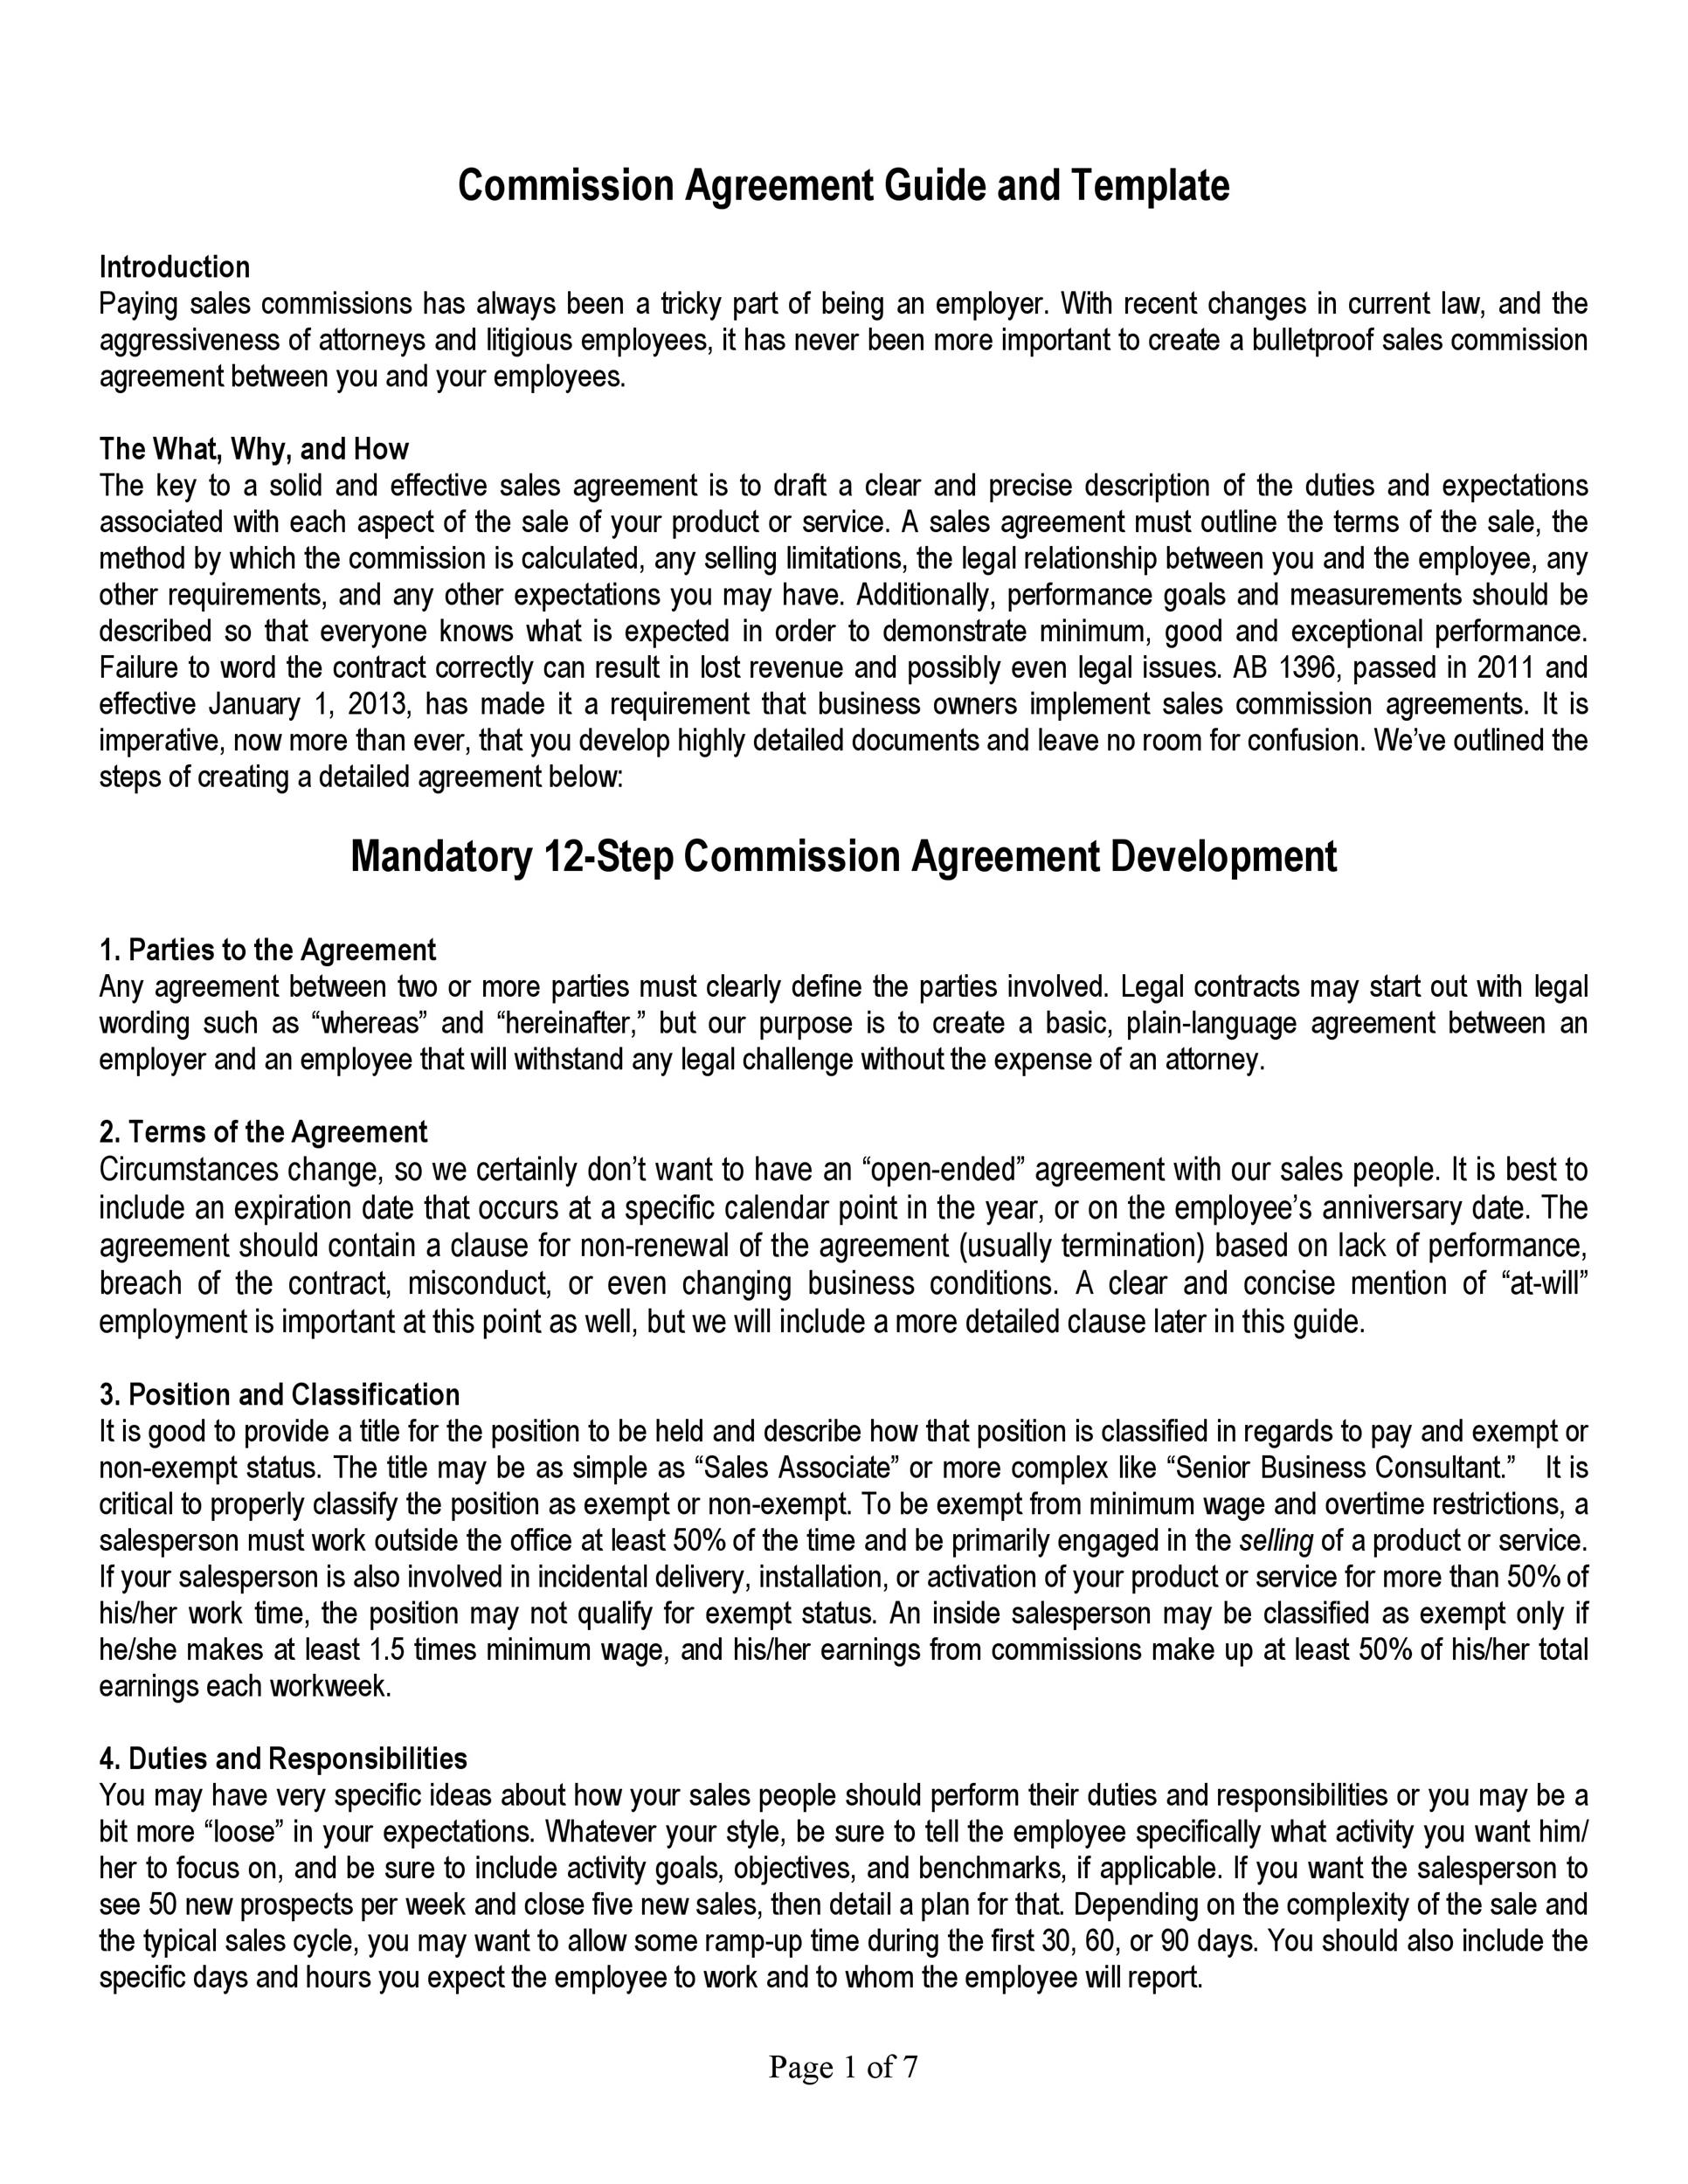 Commission Sales Agreement Template Free from templatelab.com